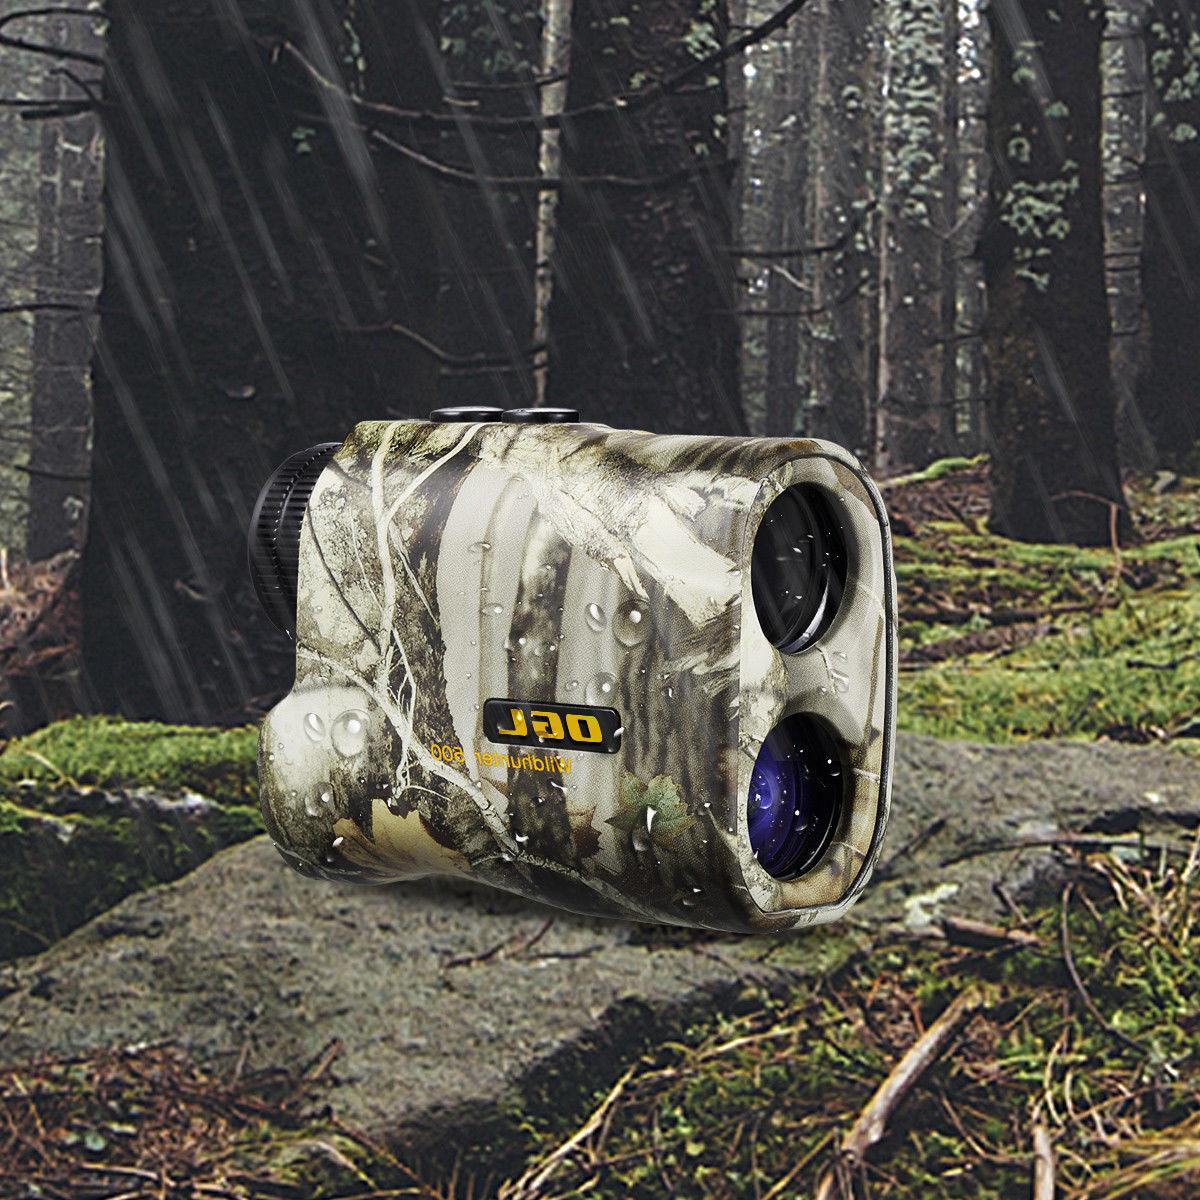 OGL Wild Laser 540 Yard Range - Speed Scan